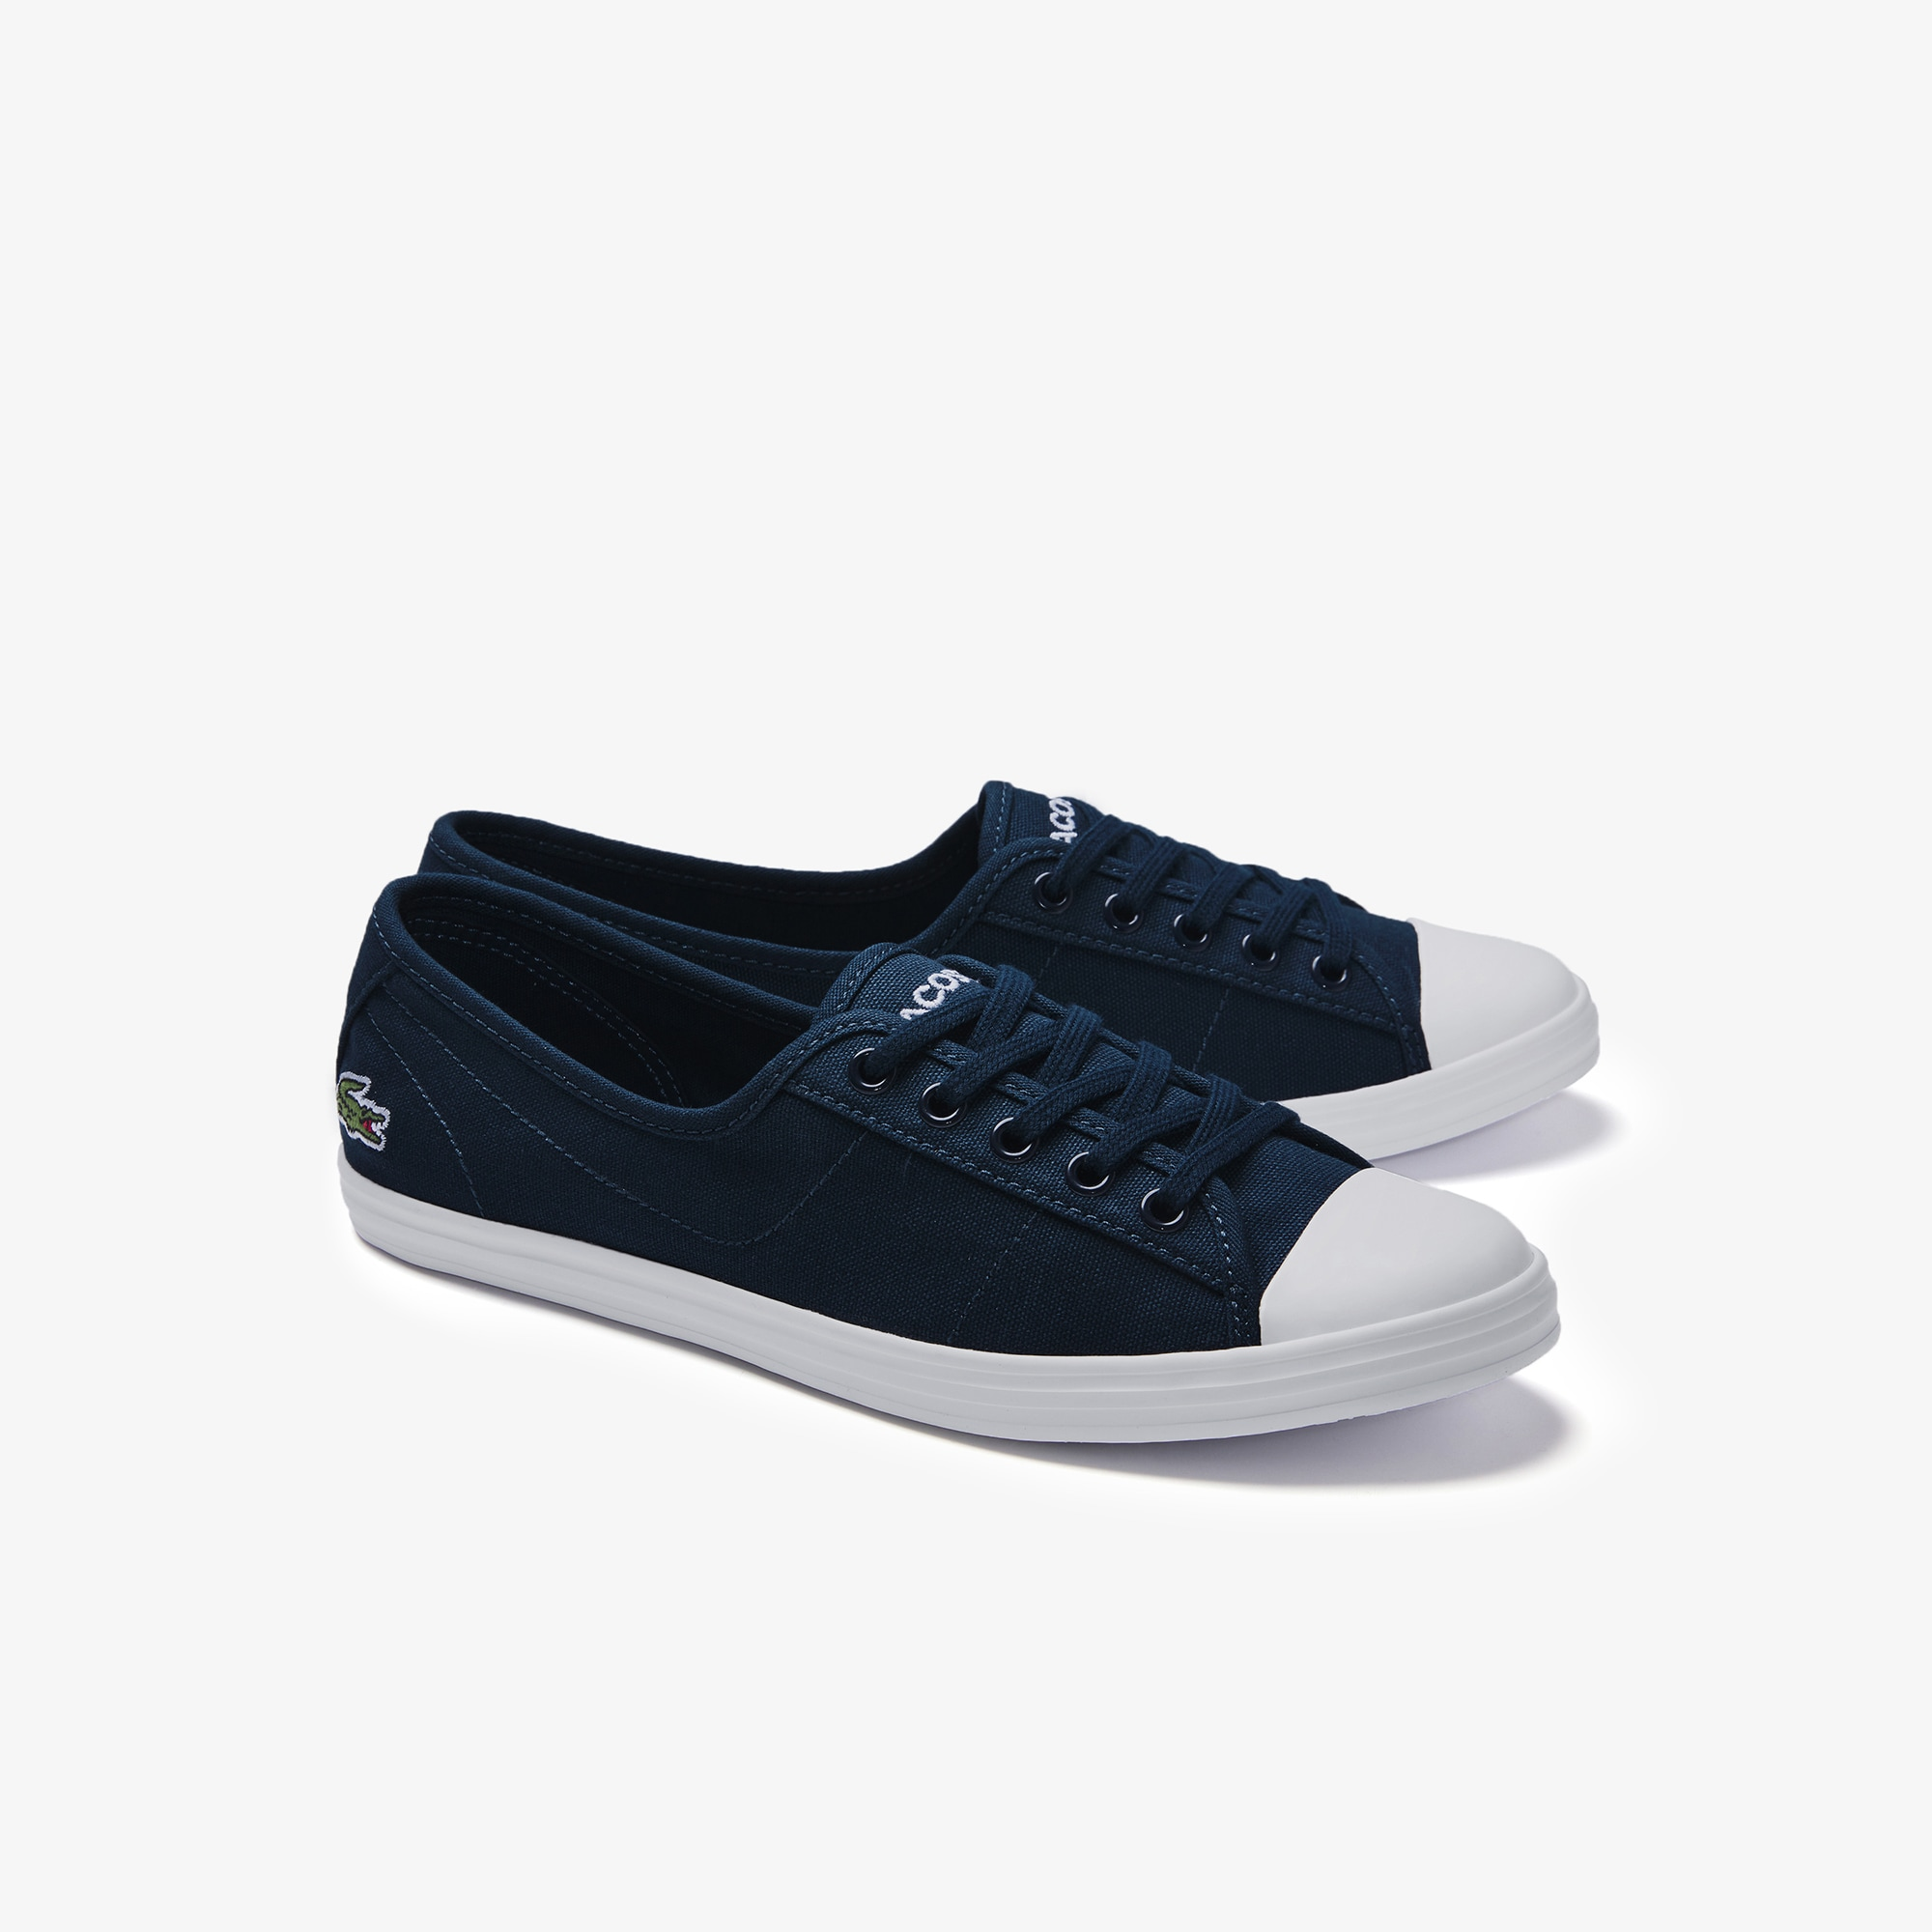 Damen-Sneakers ZIANE aus Canvas